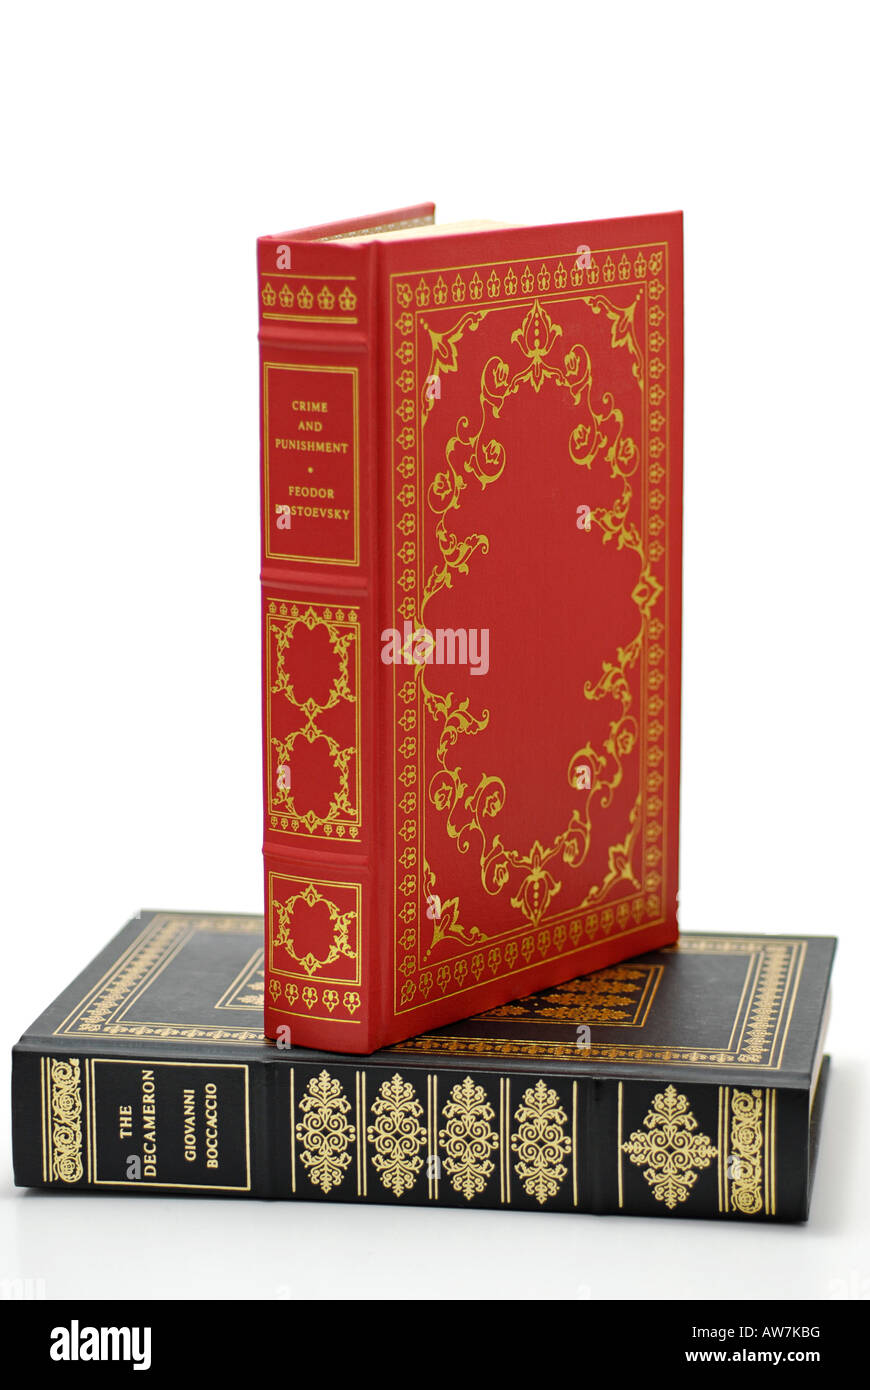 Leather Bound Books - Stock Image